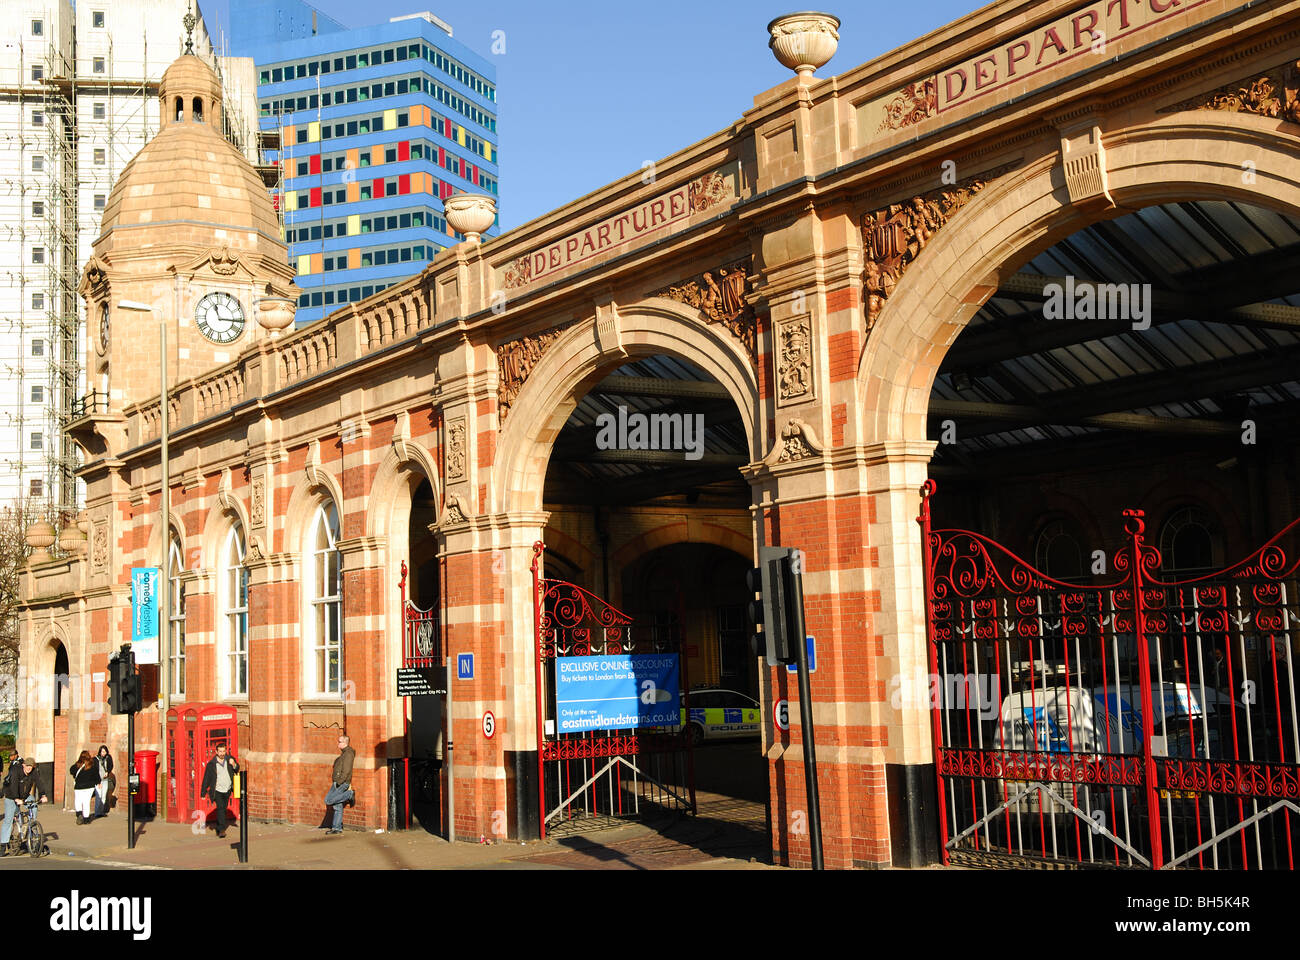 Leicester Midlands Train Station. - Stock Image